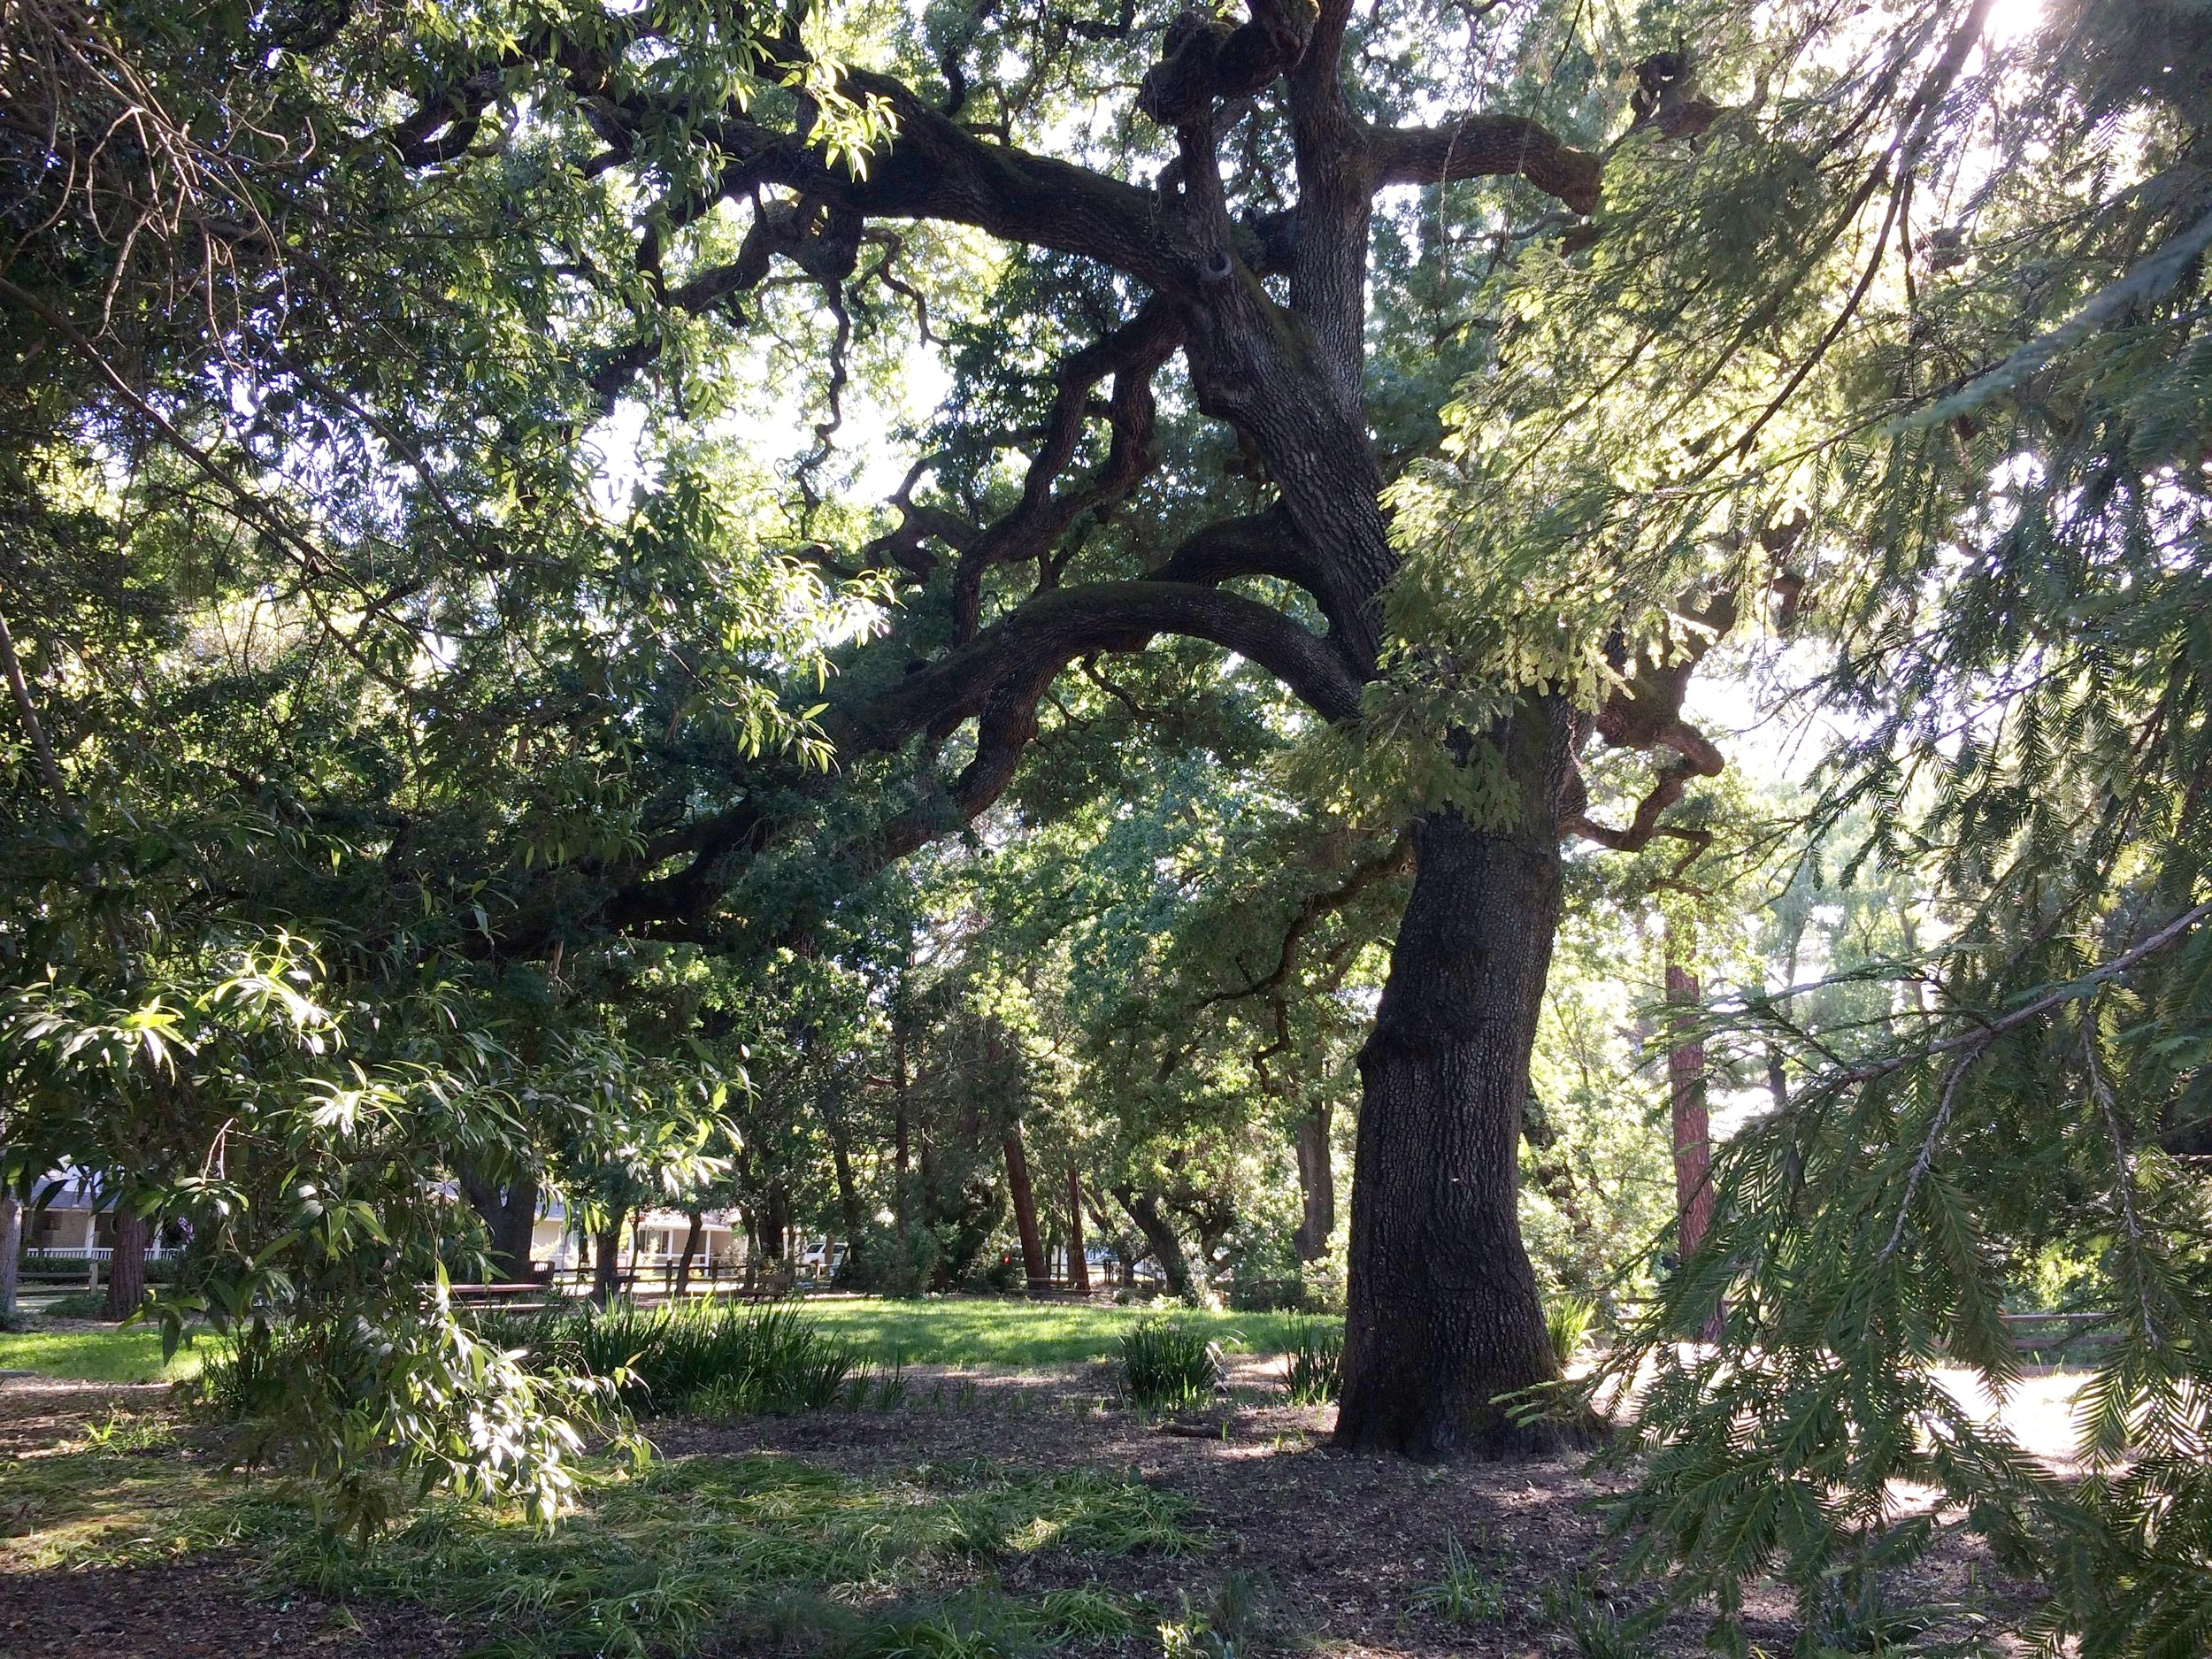 Leigh Creekside Park is canopied with Cork oaks, Valley oaks, Coast live oaks, Incense cedars, Black walnut, California buckeye, and California bay trees.